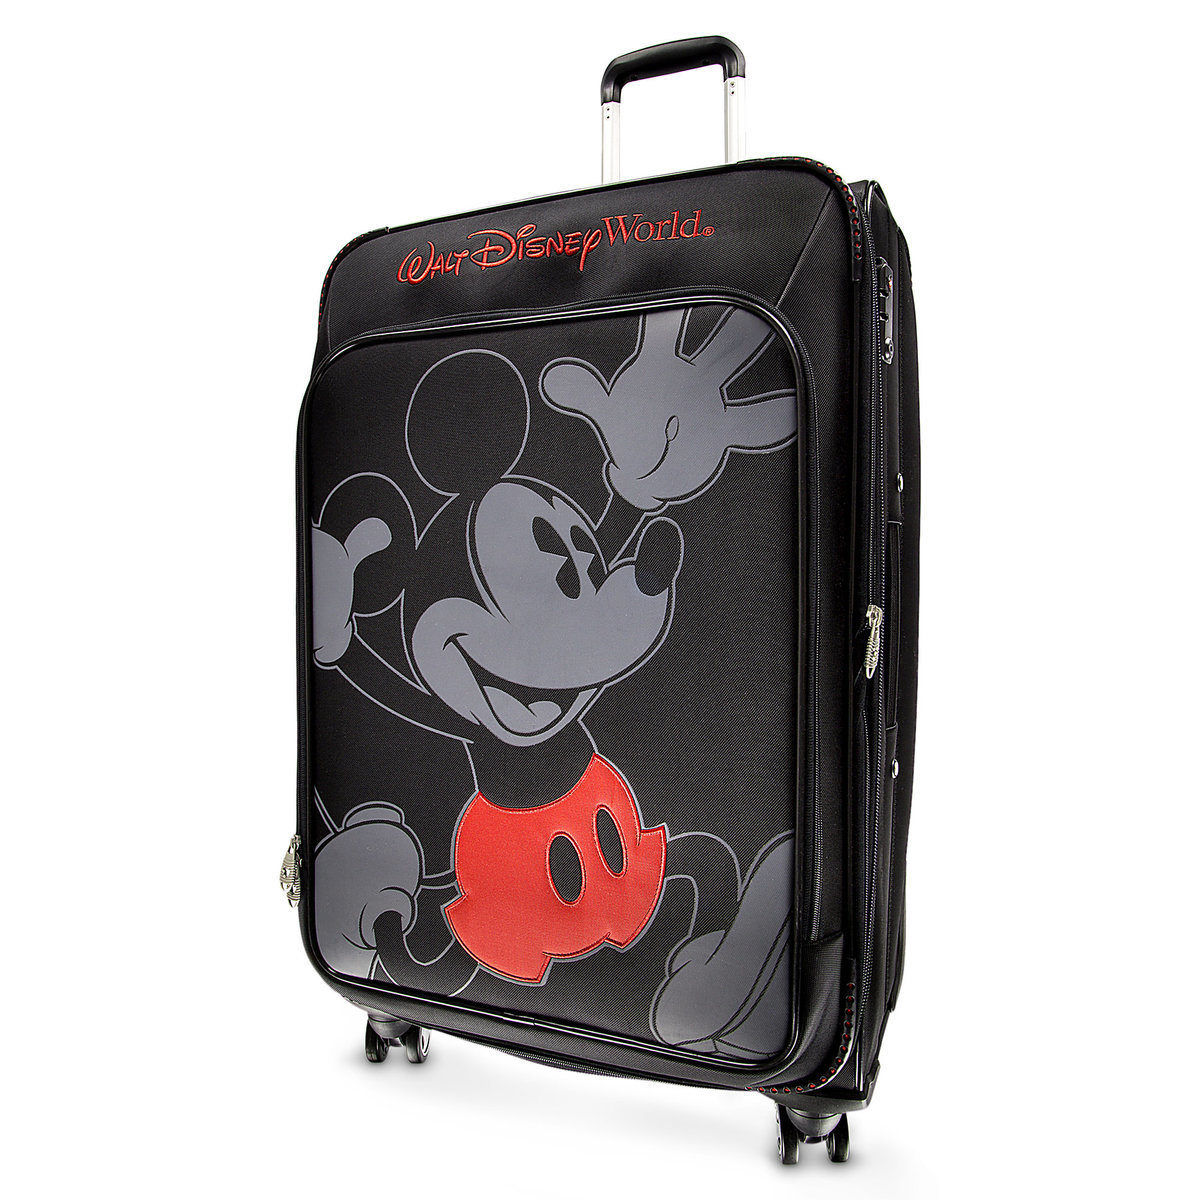 0af2ce45384 Product Image of Mickey Mouse Timeless Rolling Luggage - 29   - Walt Disney  World